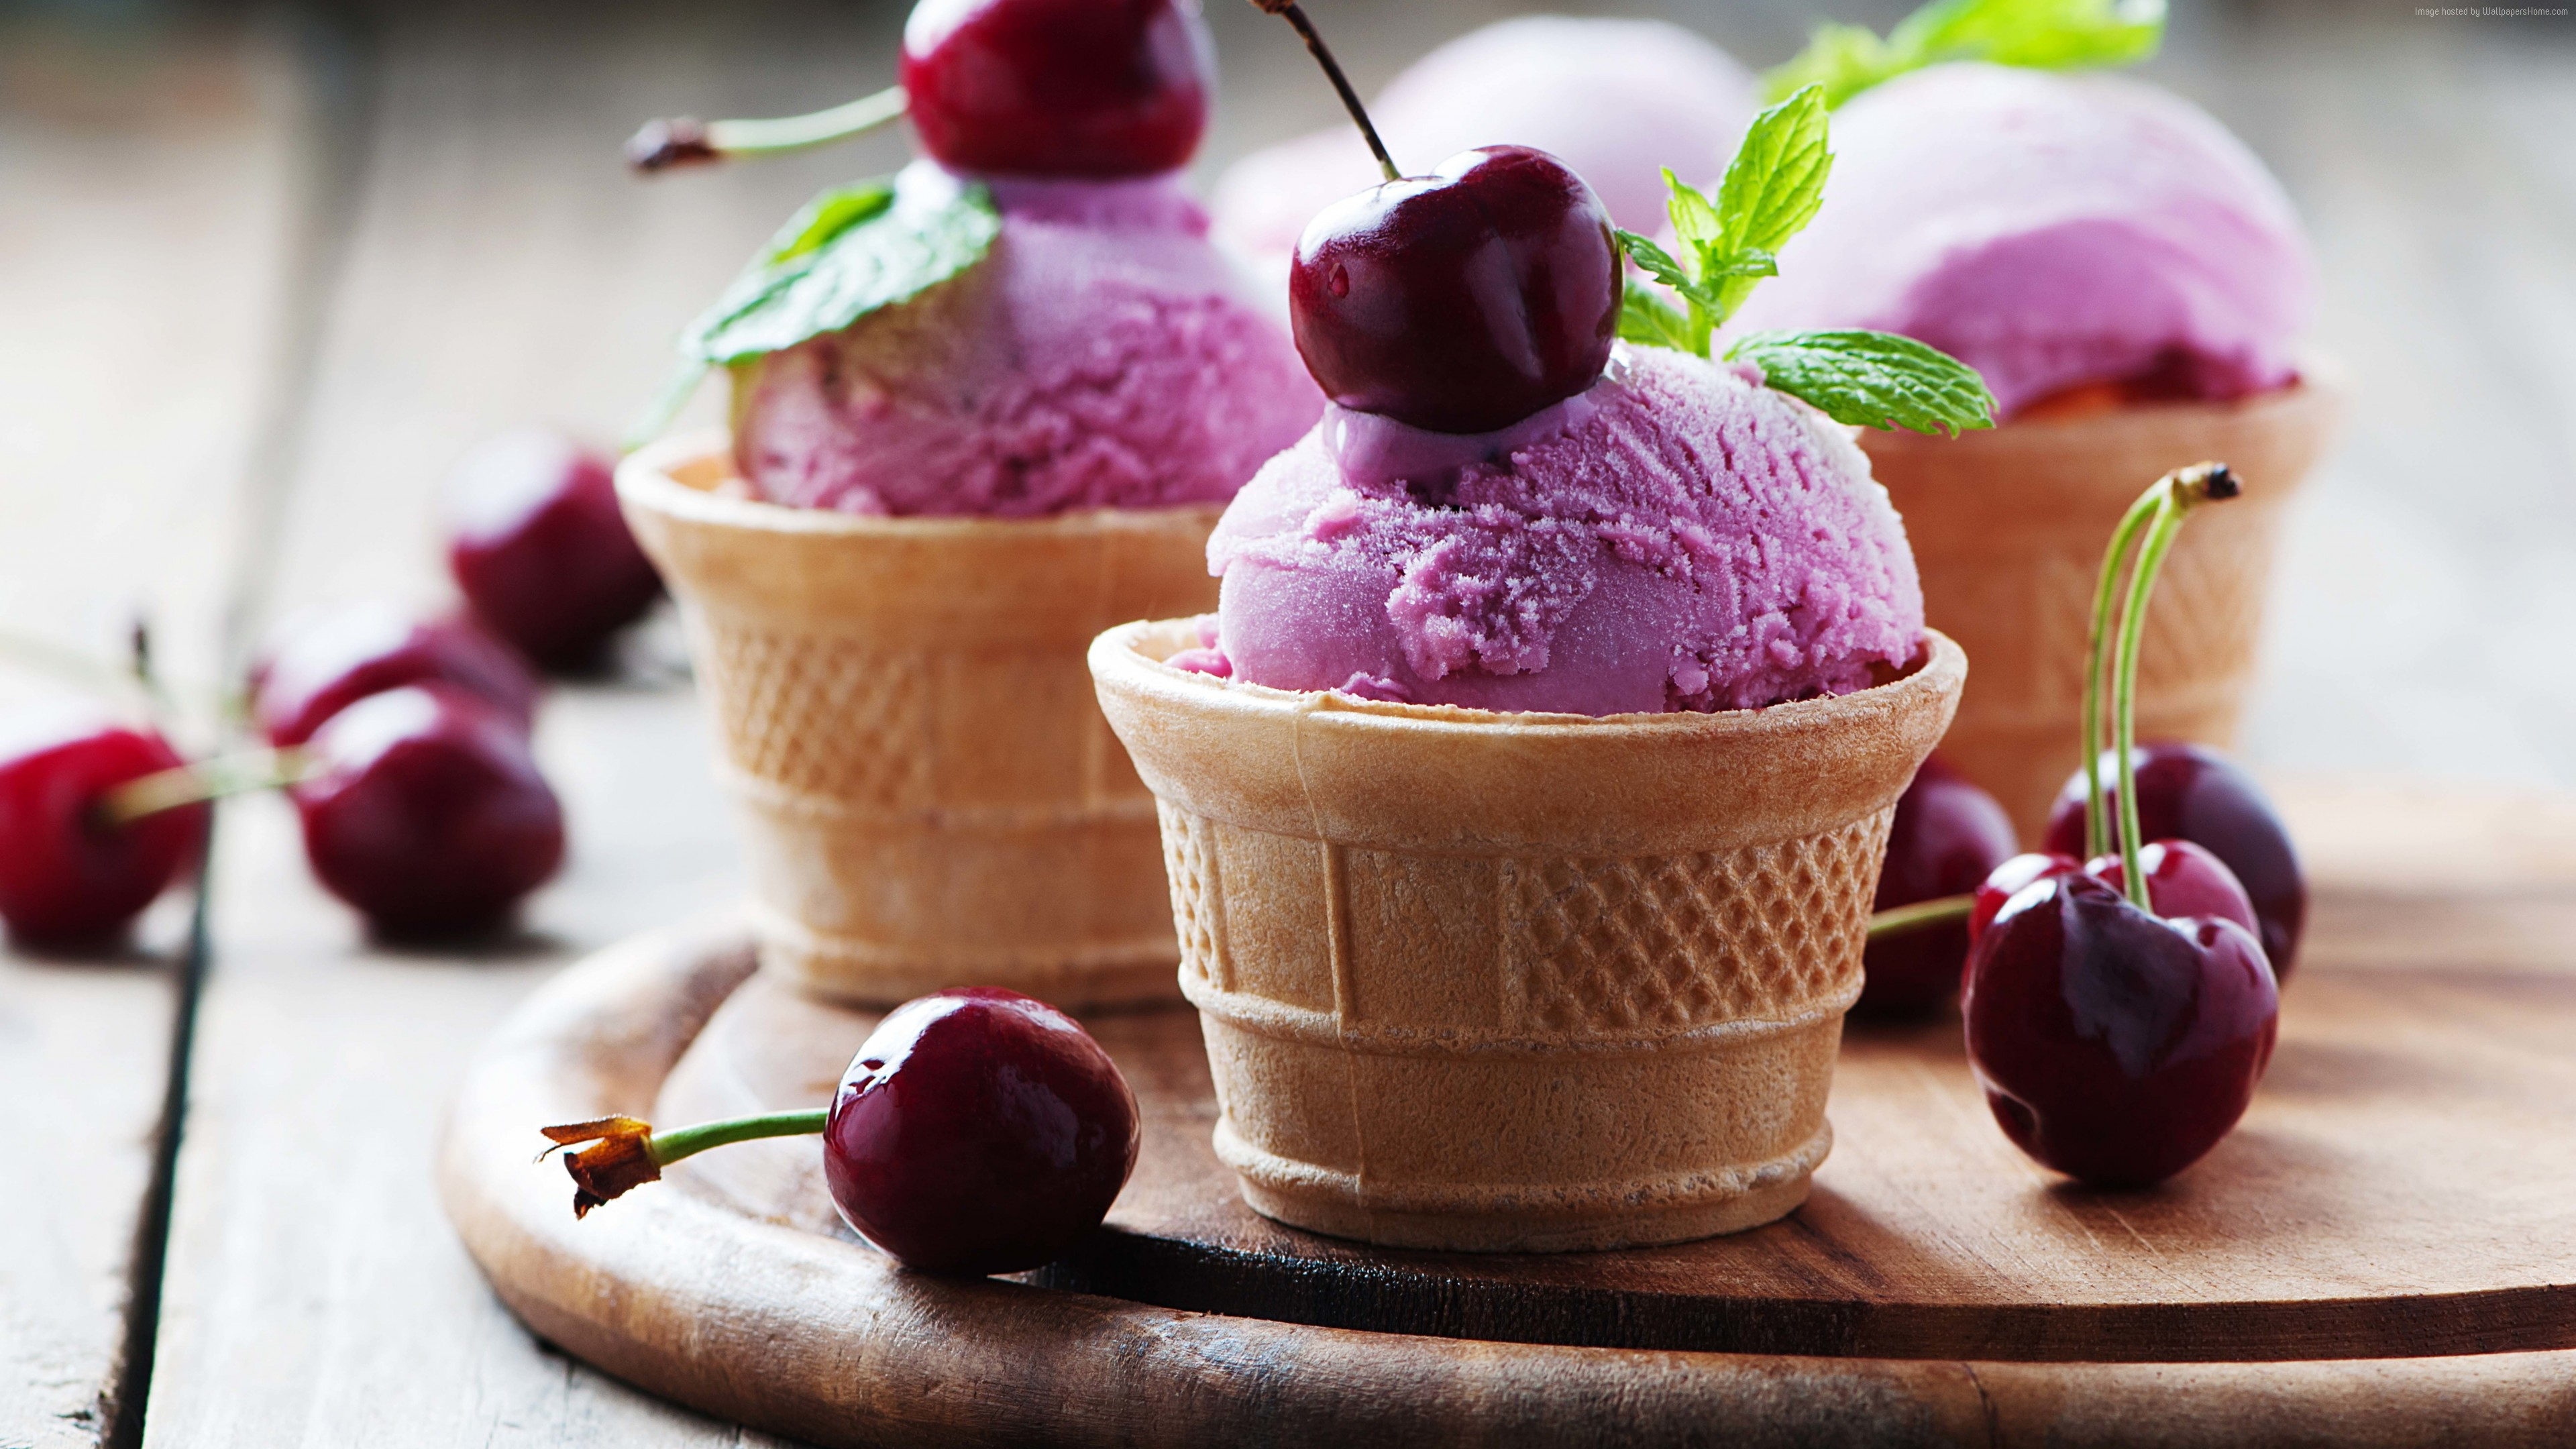 Wallpaper ice cream, cherries, delicious, 4k, Food